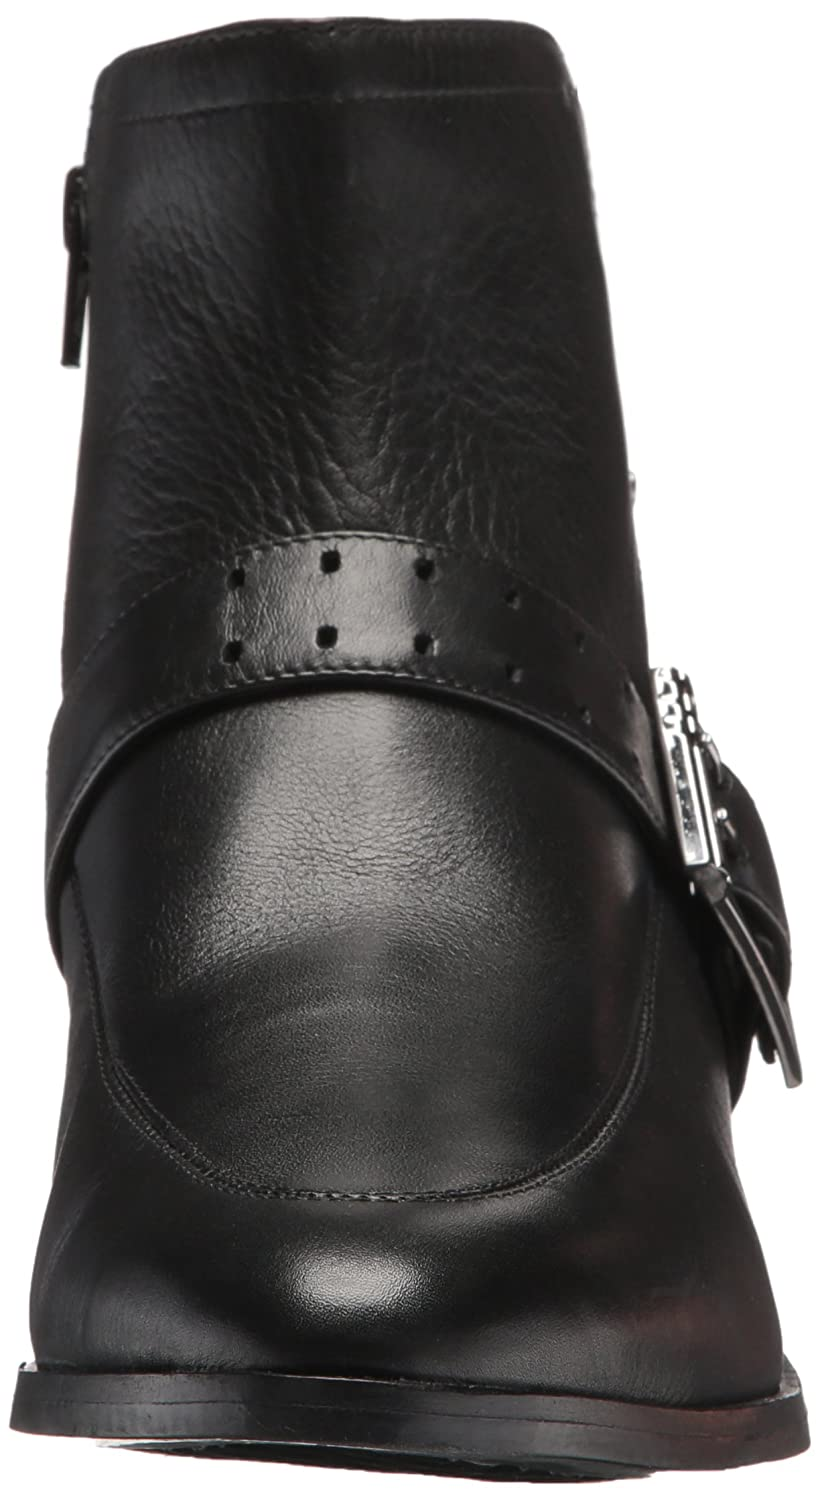 Aerosoles Women's Back East Ankle Boot B075694BTH 6.5 B(M) US|Black Leather